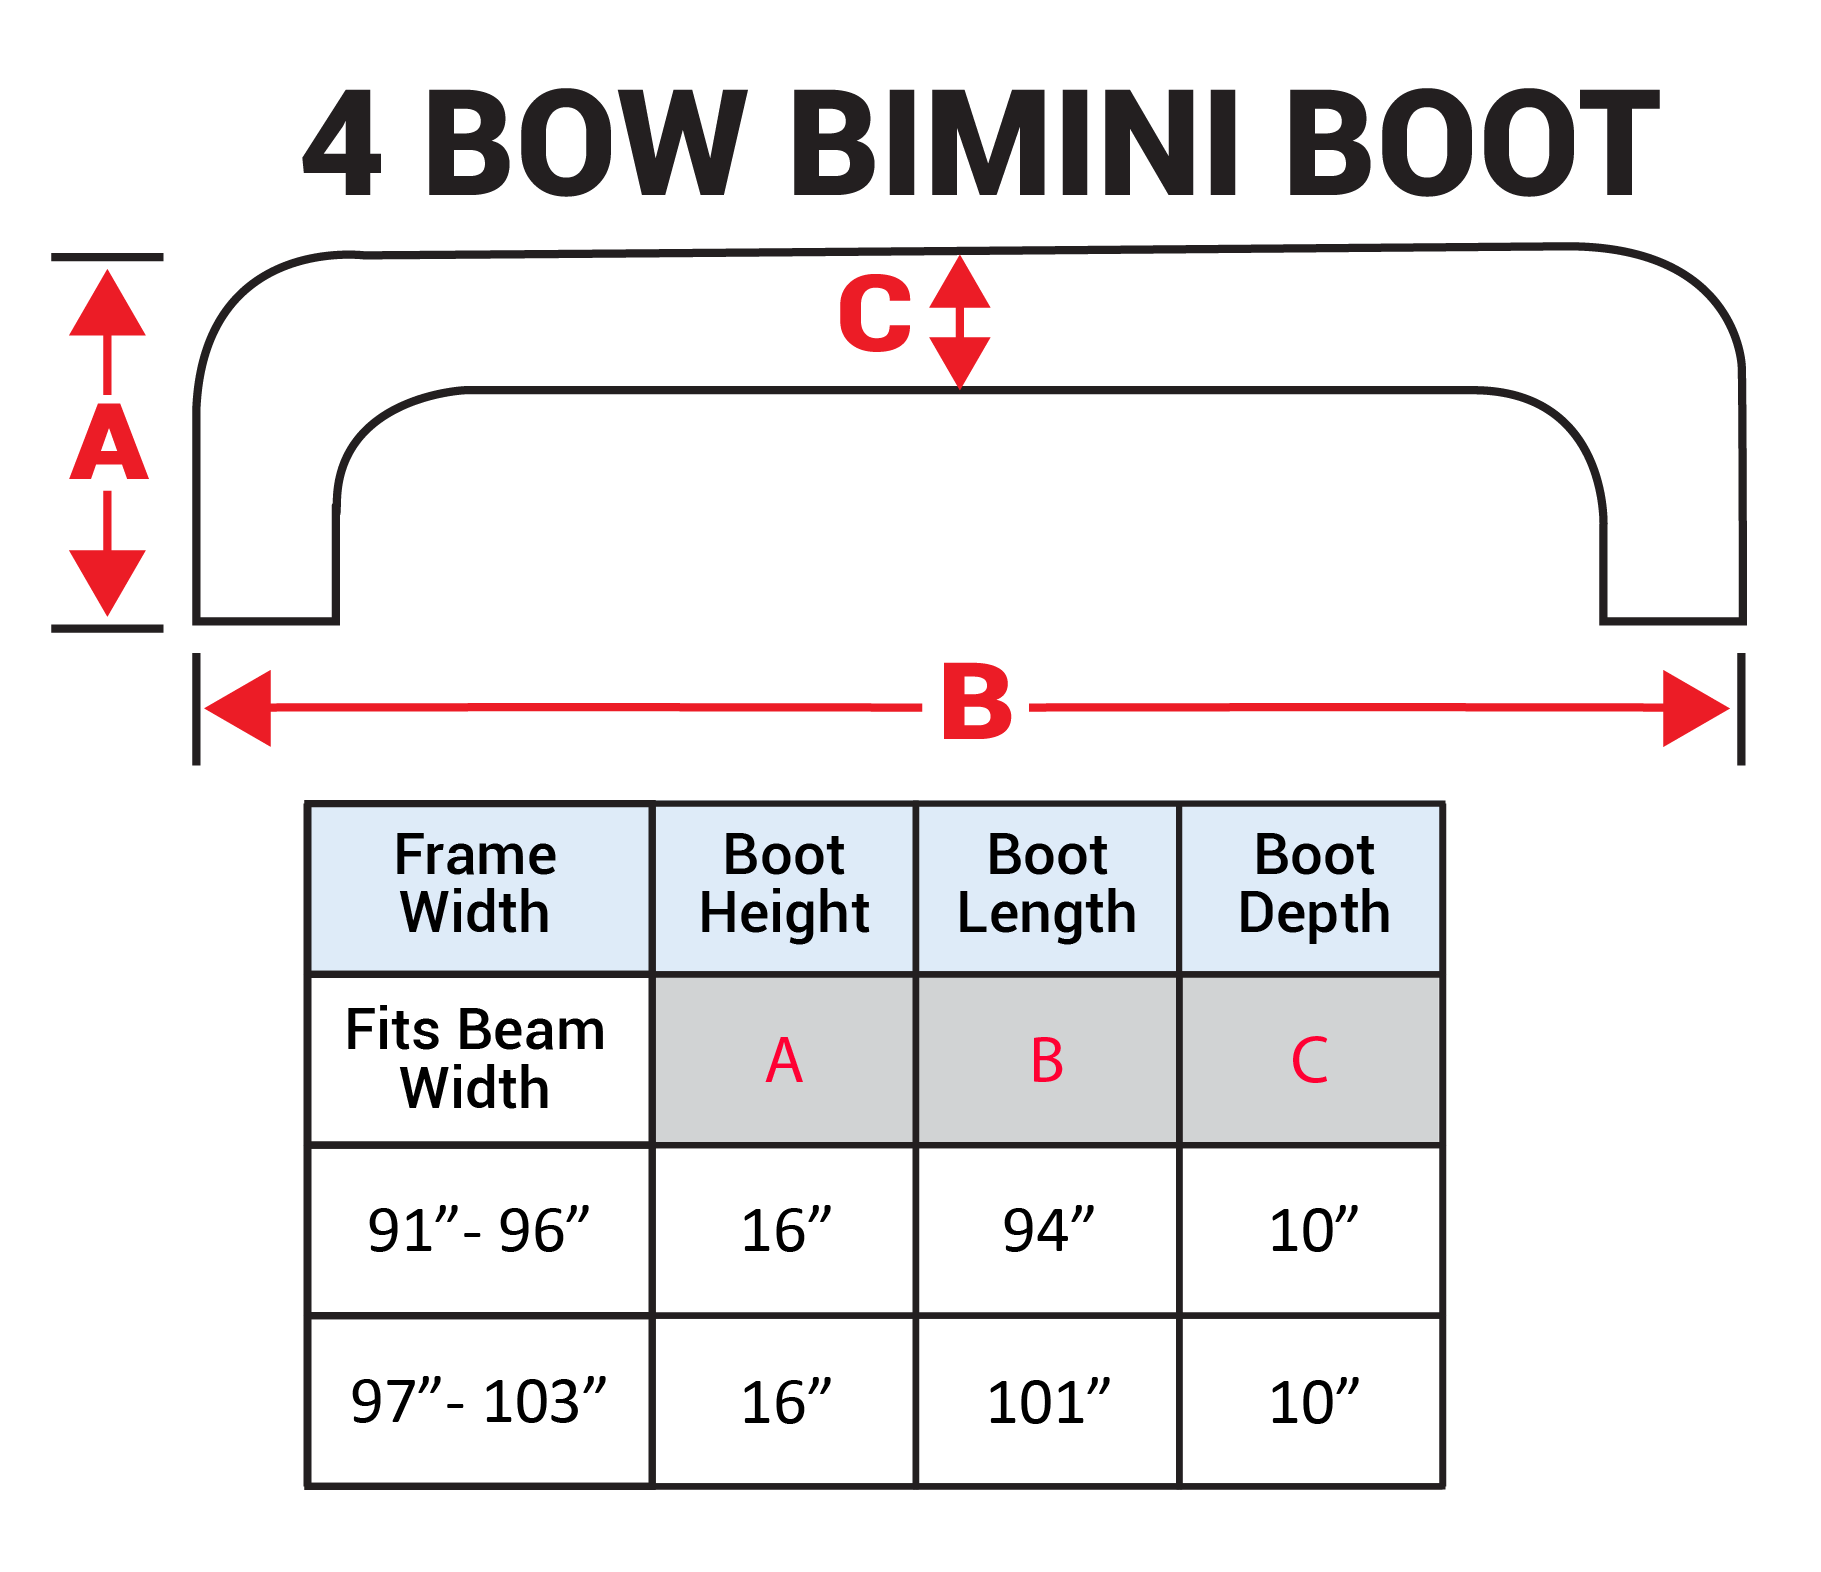 NBT-4-bow-bimini-boot-graphic_2